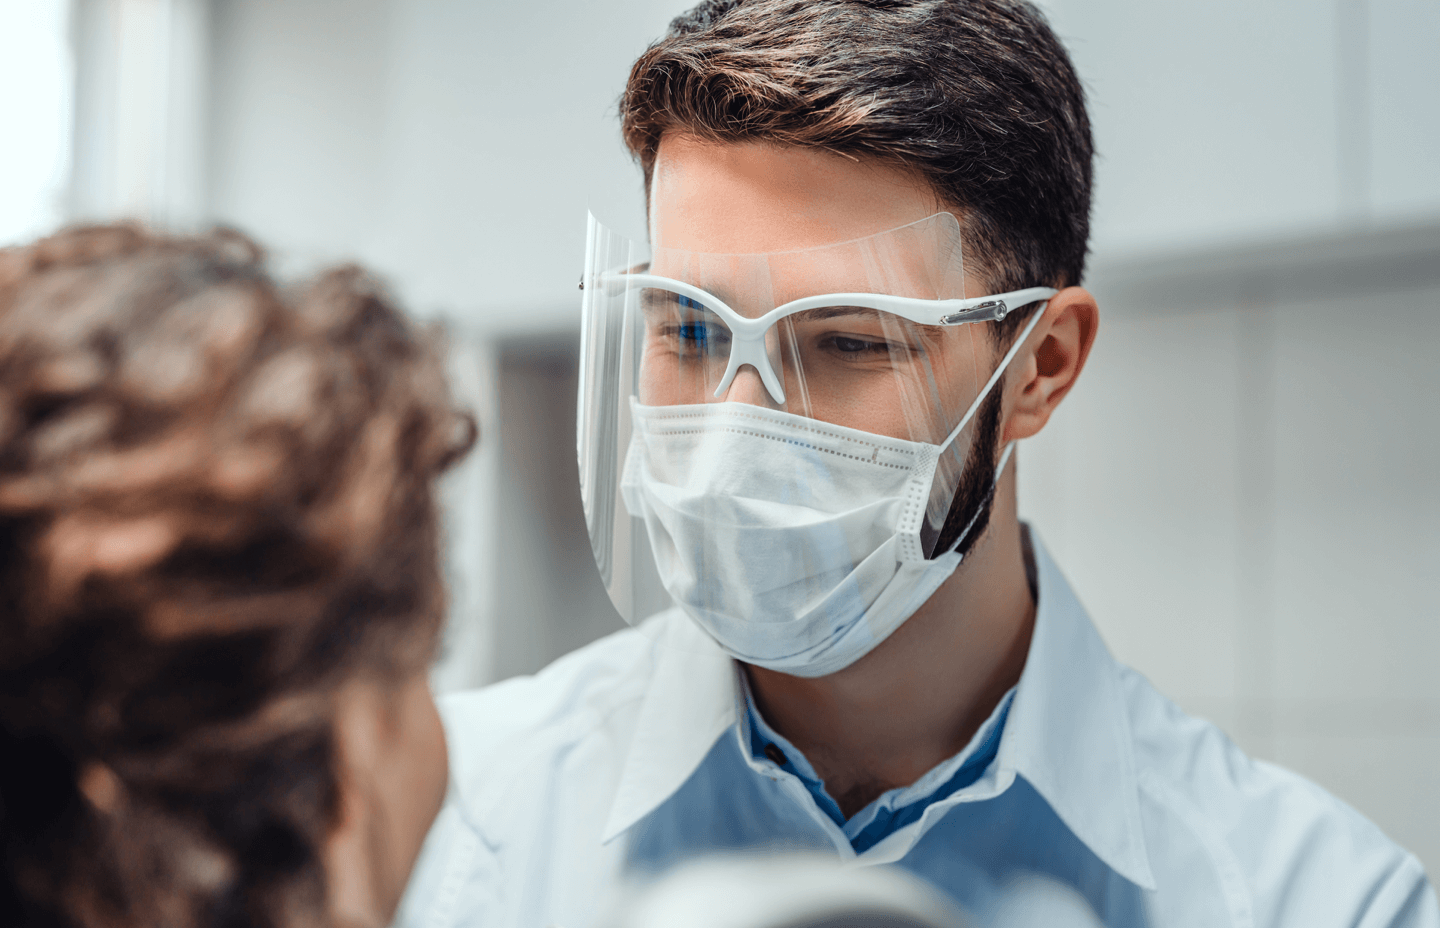 Doctor screening patient wearing face mask